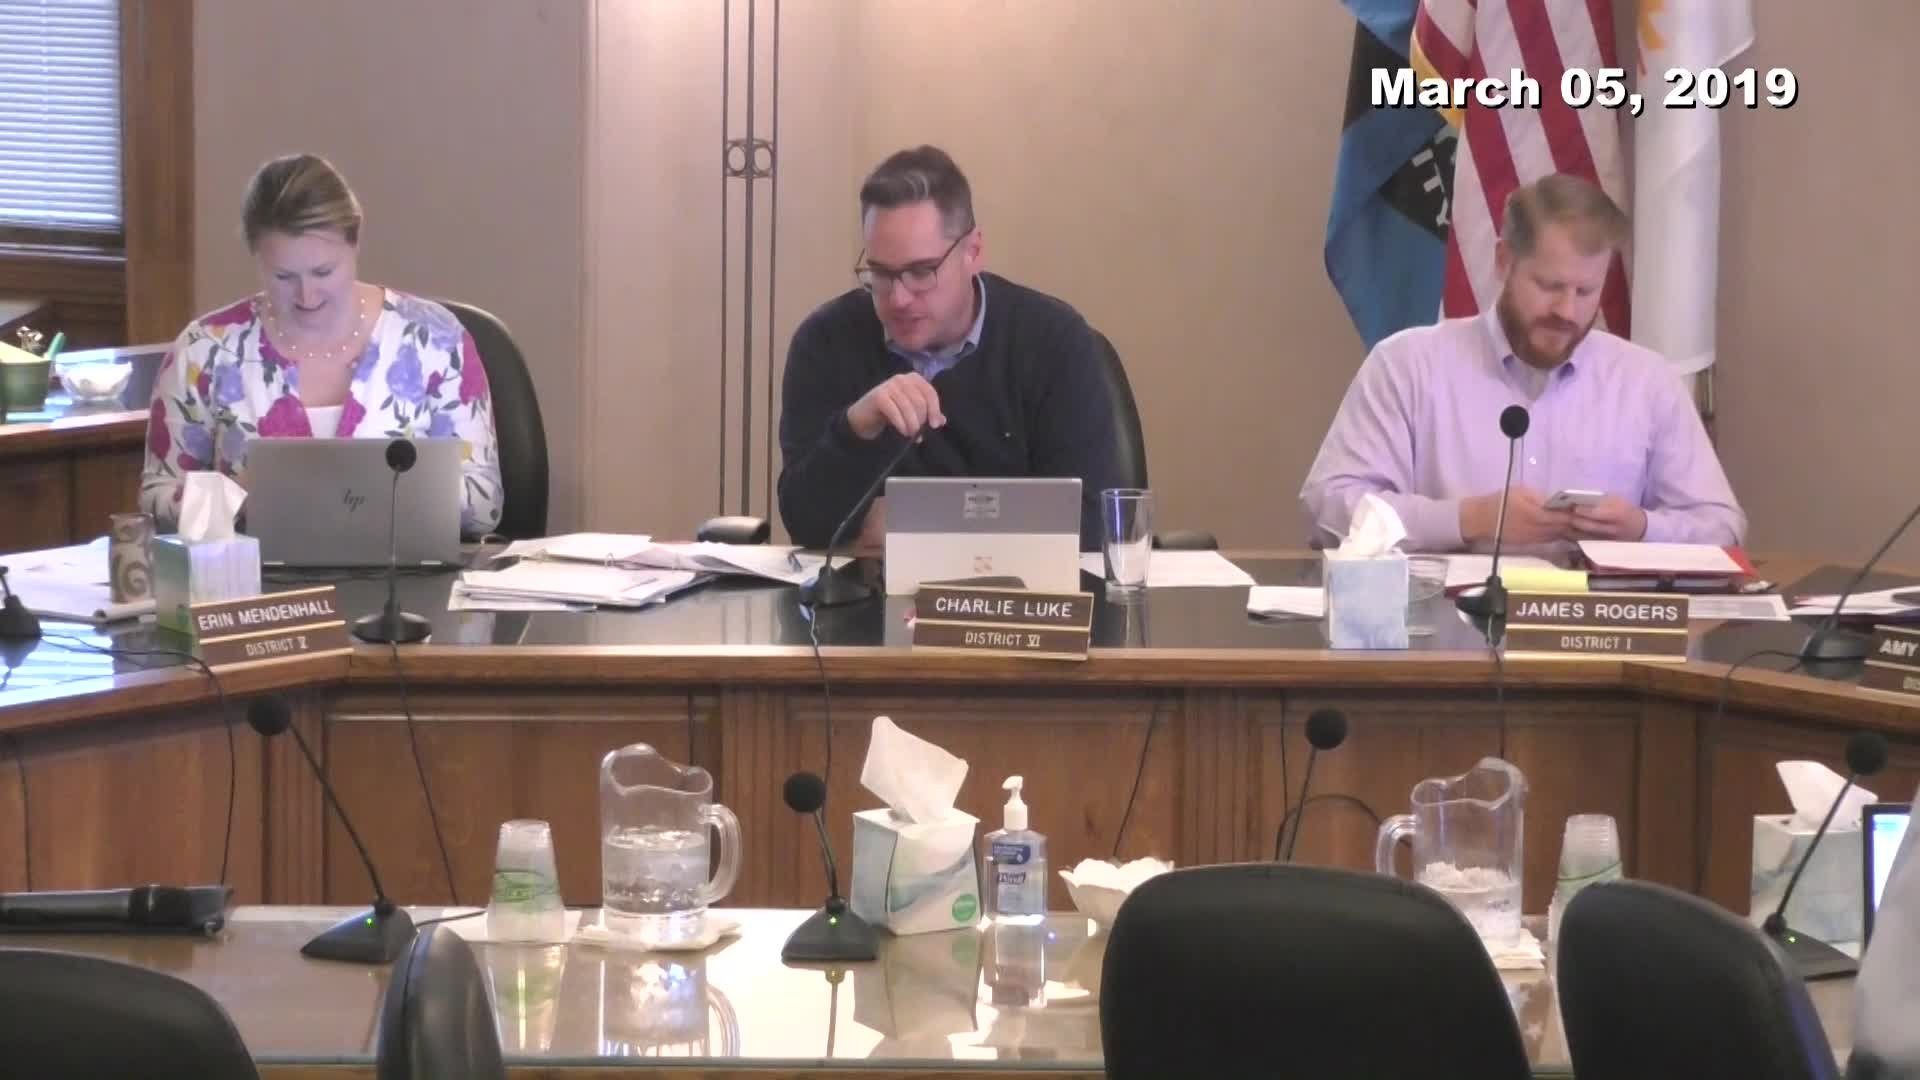 City Council Work Session - 03/05/2019